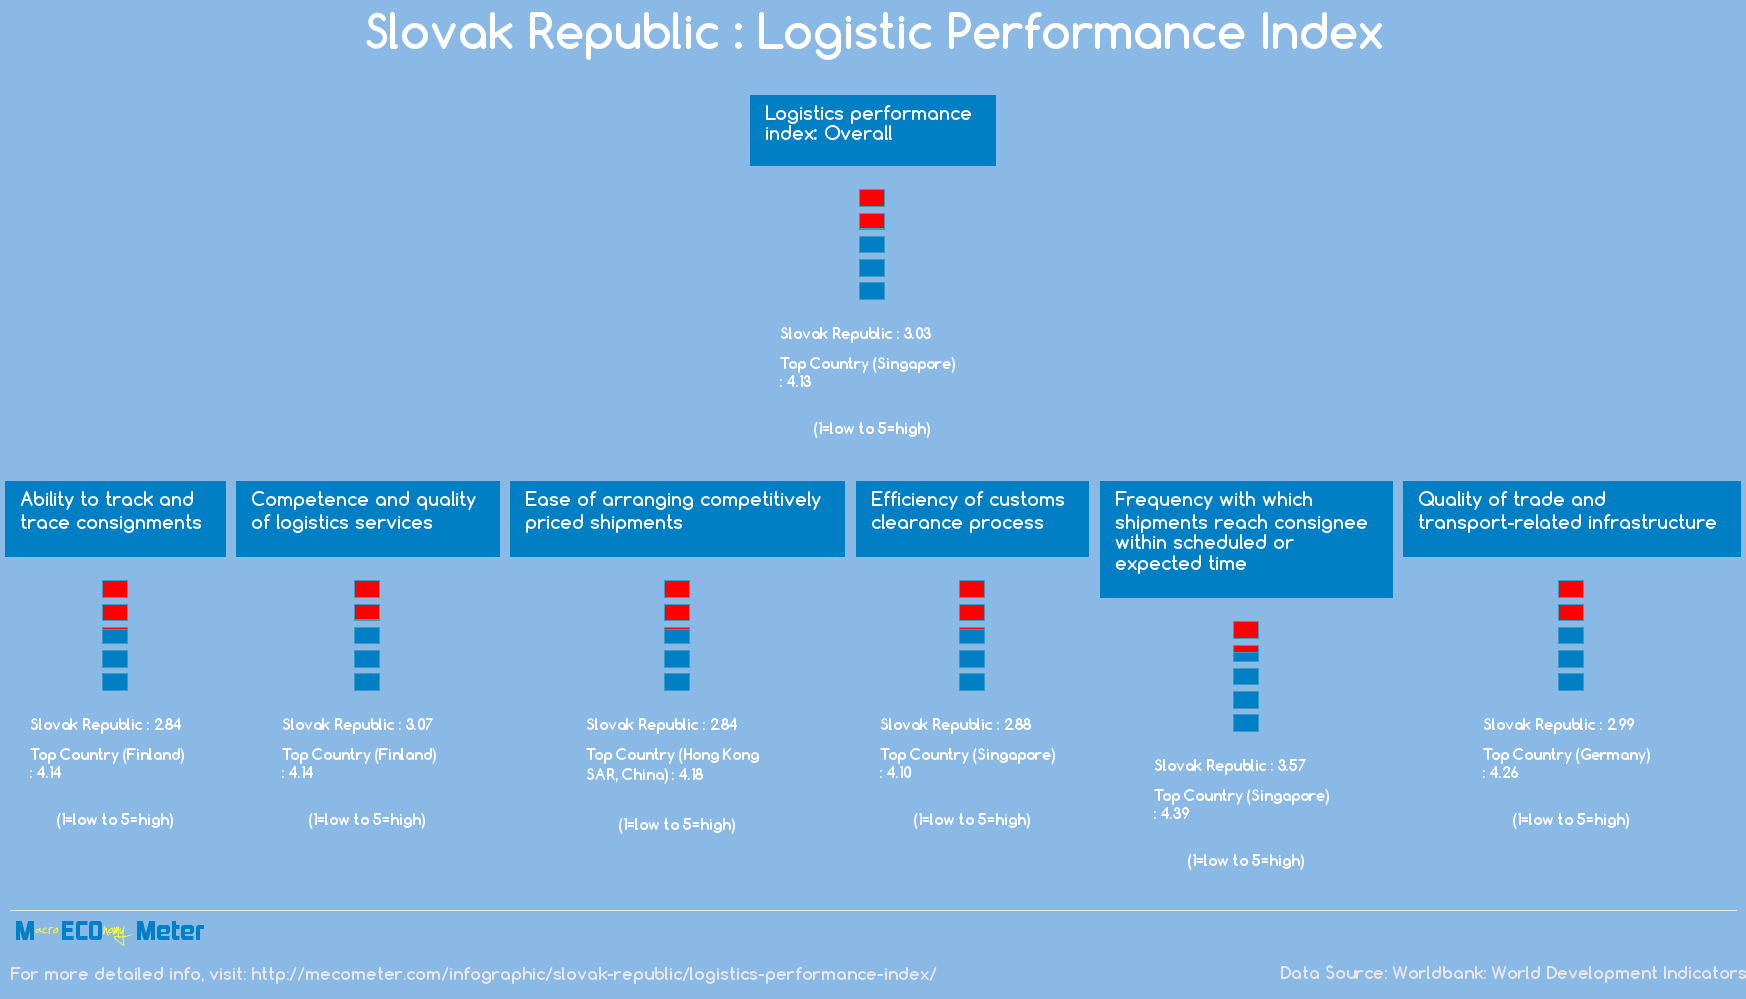 Slovak Republic : Logistic Performance Index